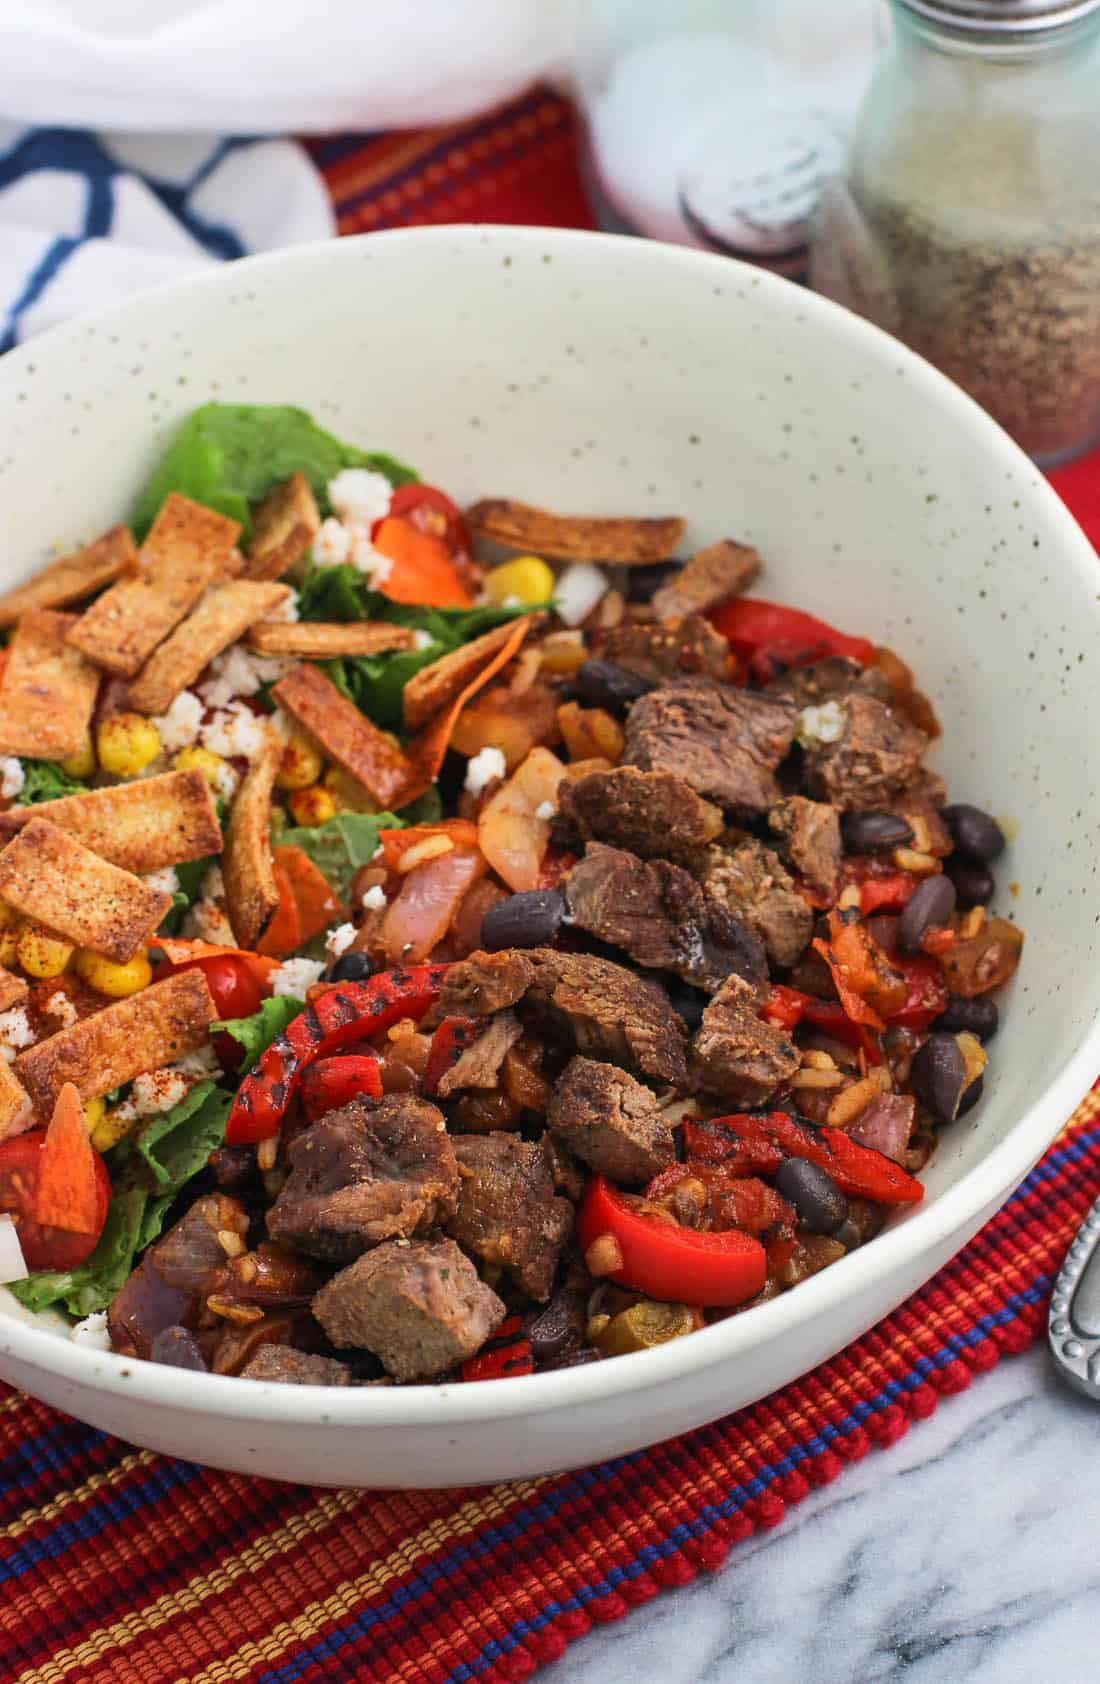 Barbacoa beef and peppers in a bowl next to a salad with salt and pepper shakers in the background